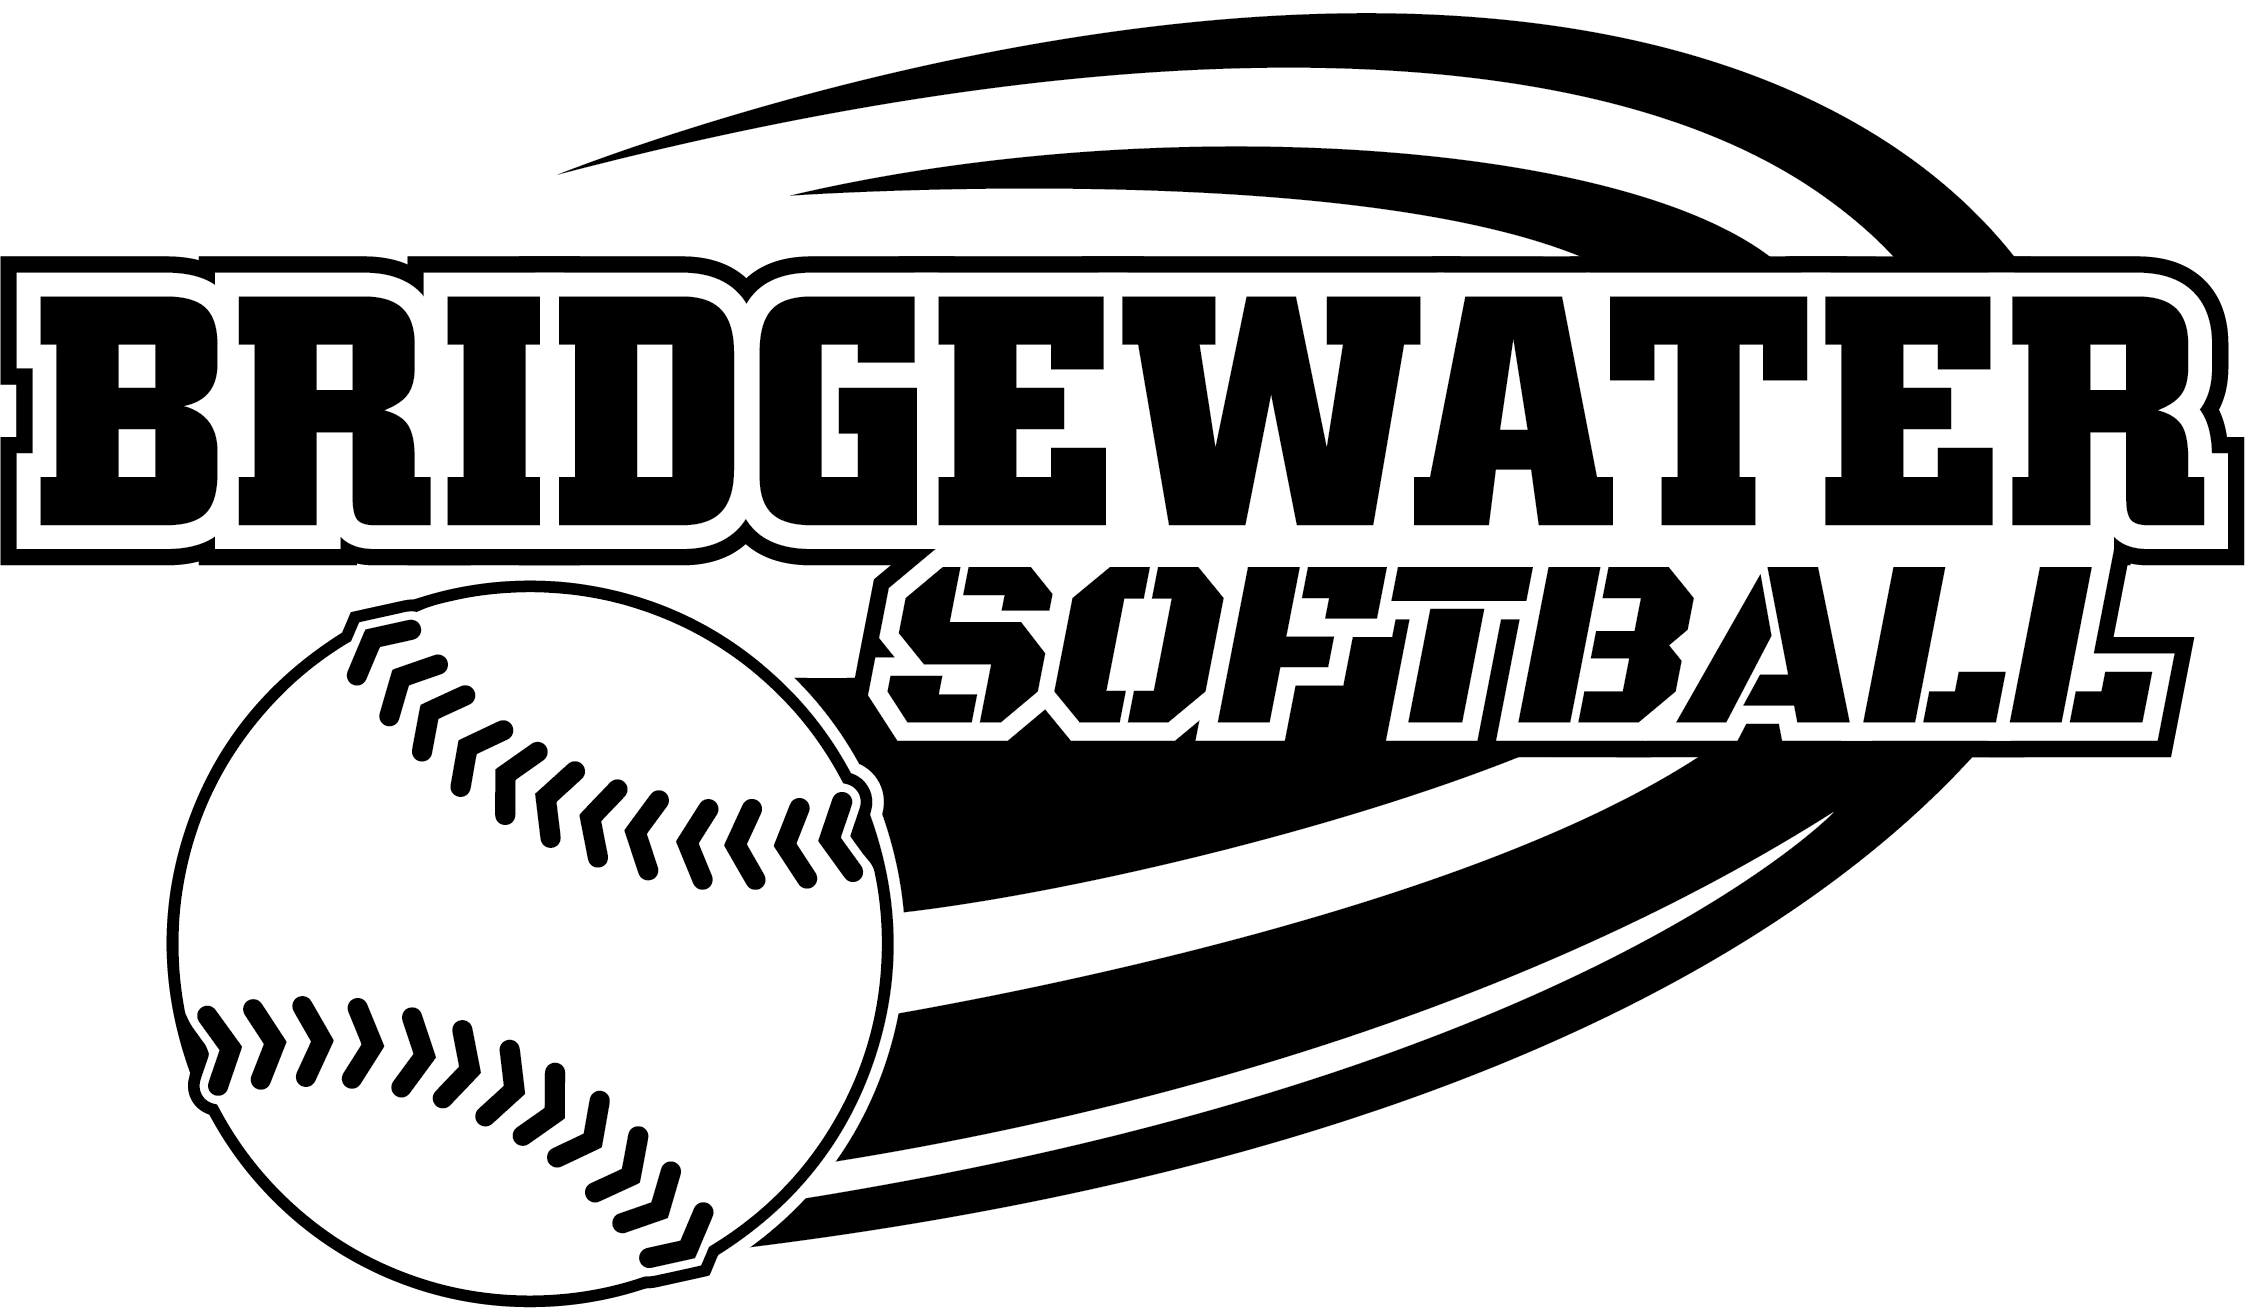 Bridgewater Girls Softball League, Softball, Run, Field